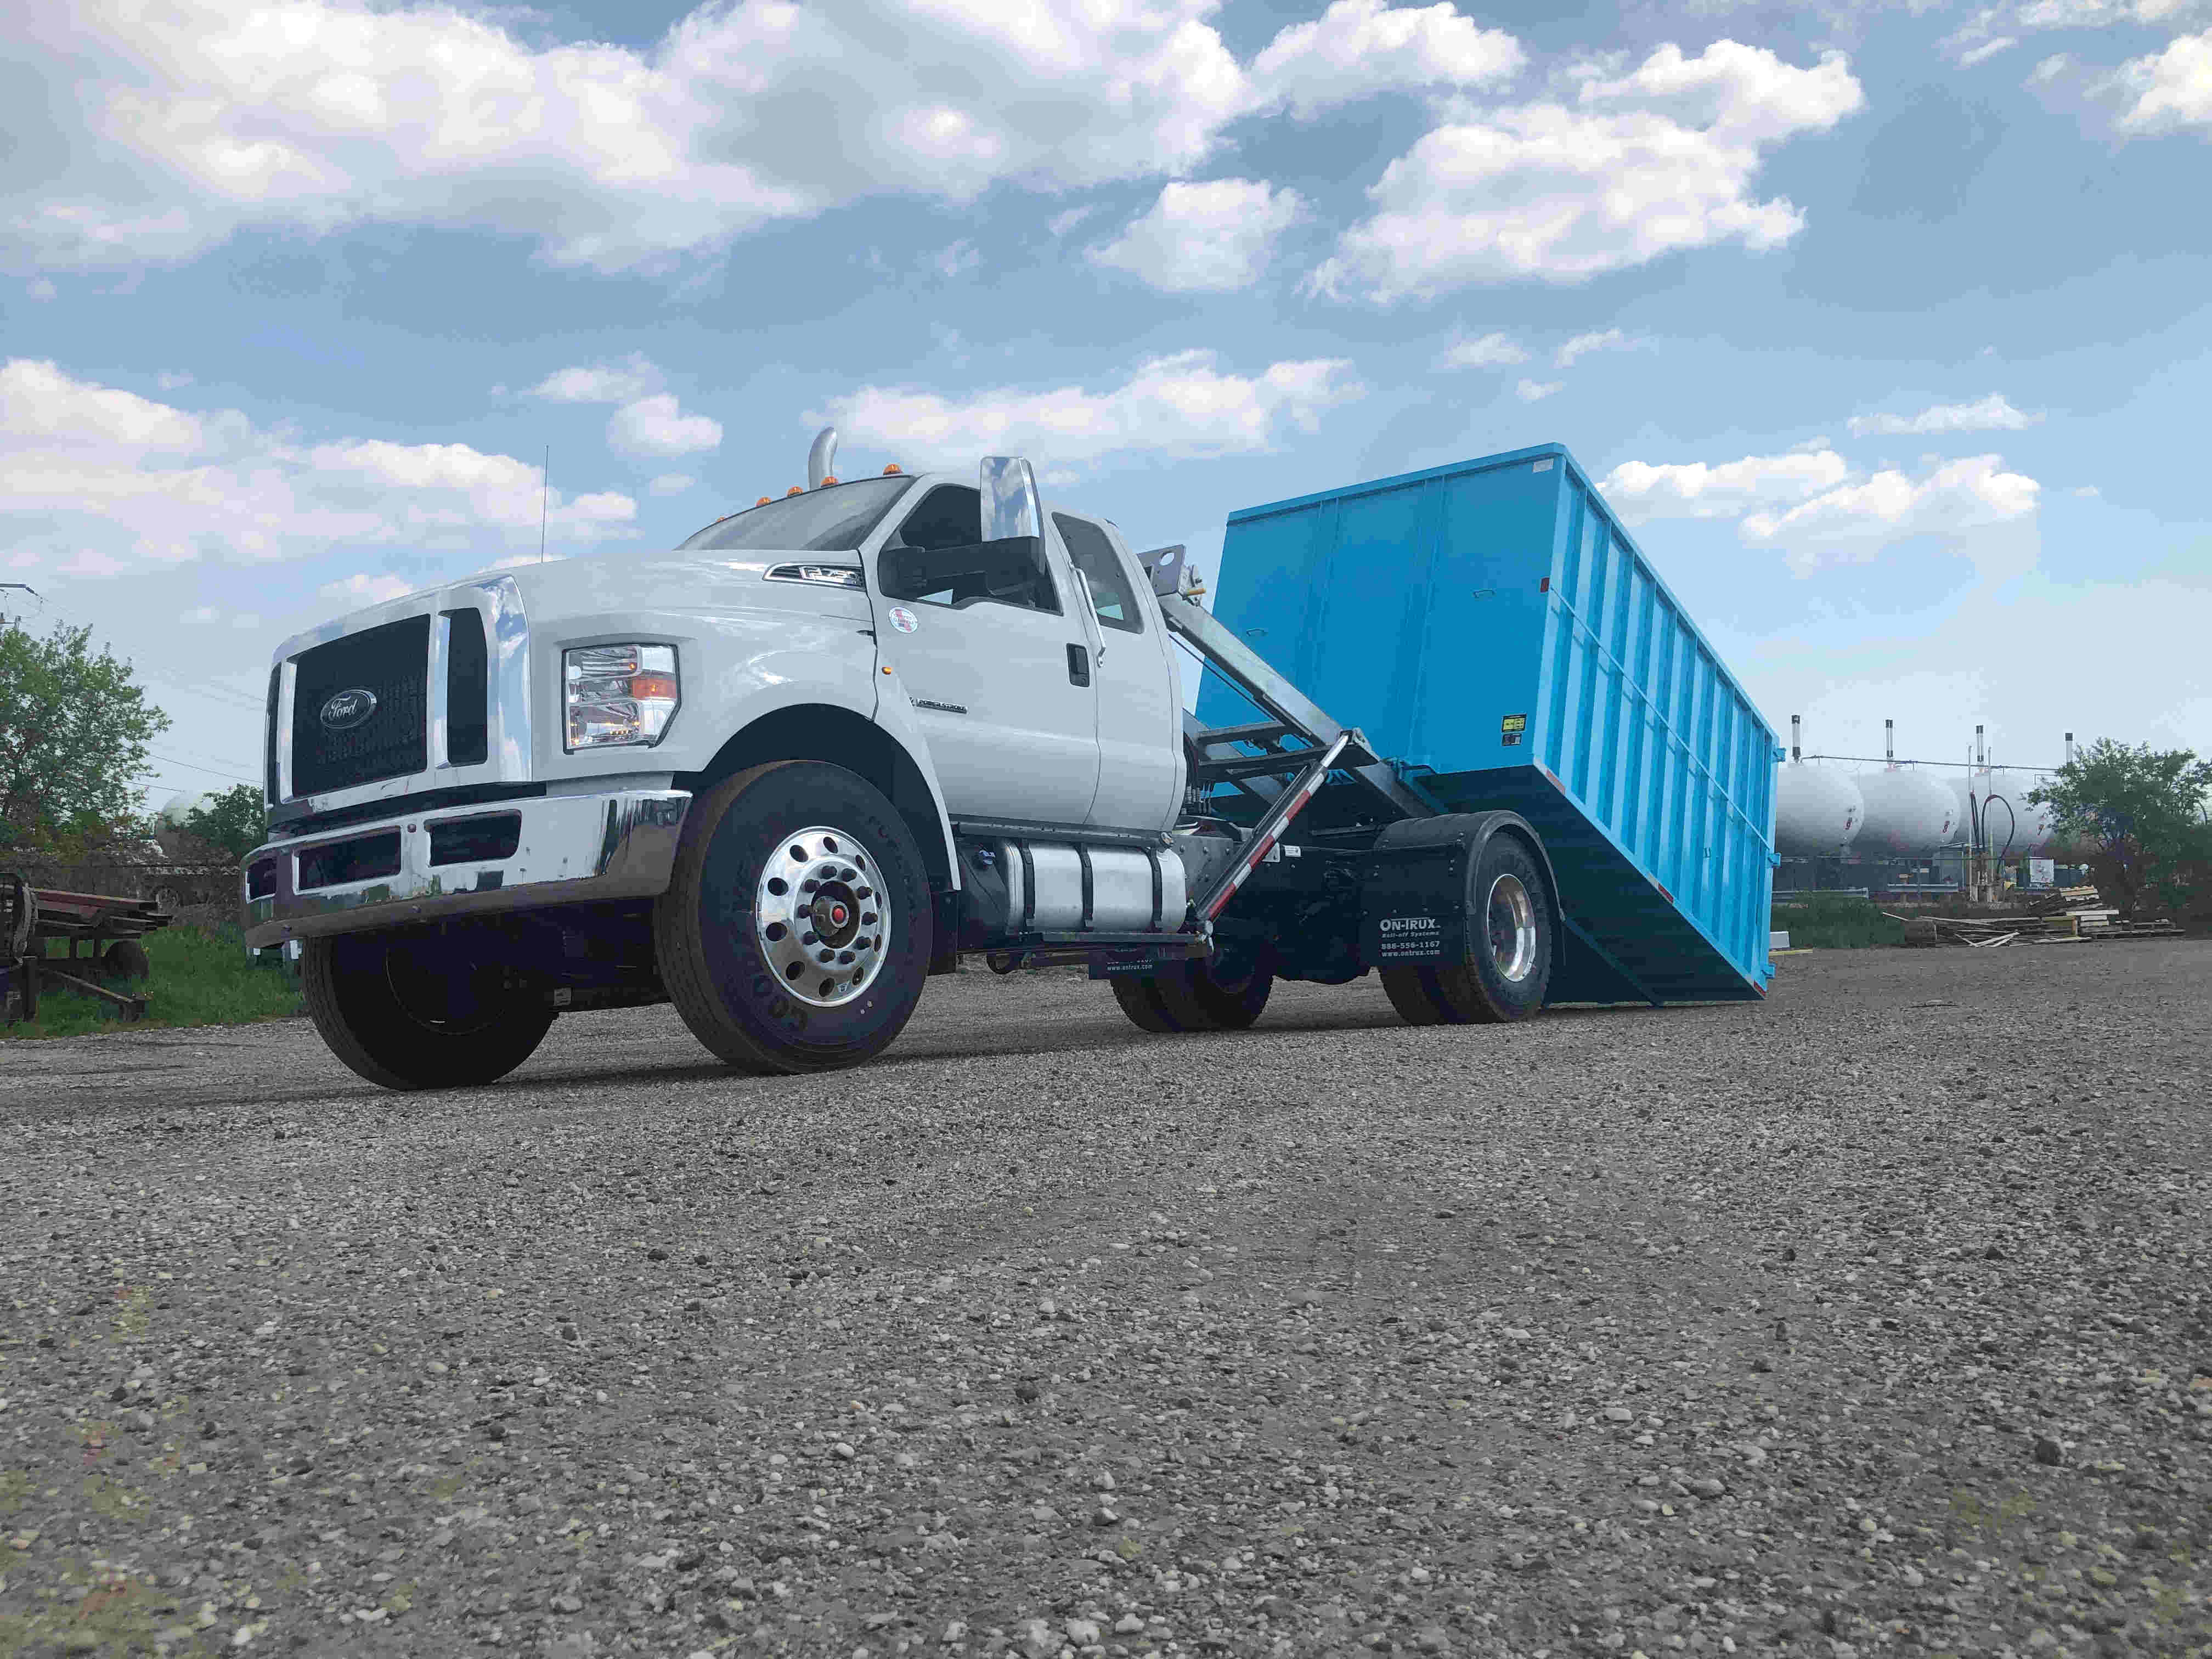 2021 Ford F750 12 On Trux System White (20)